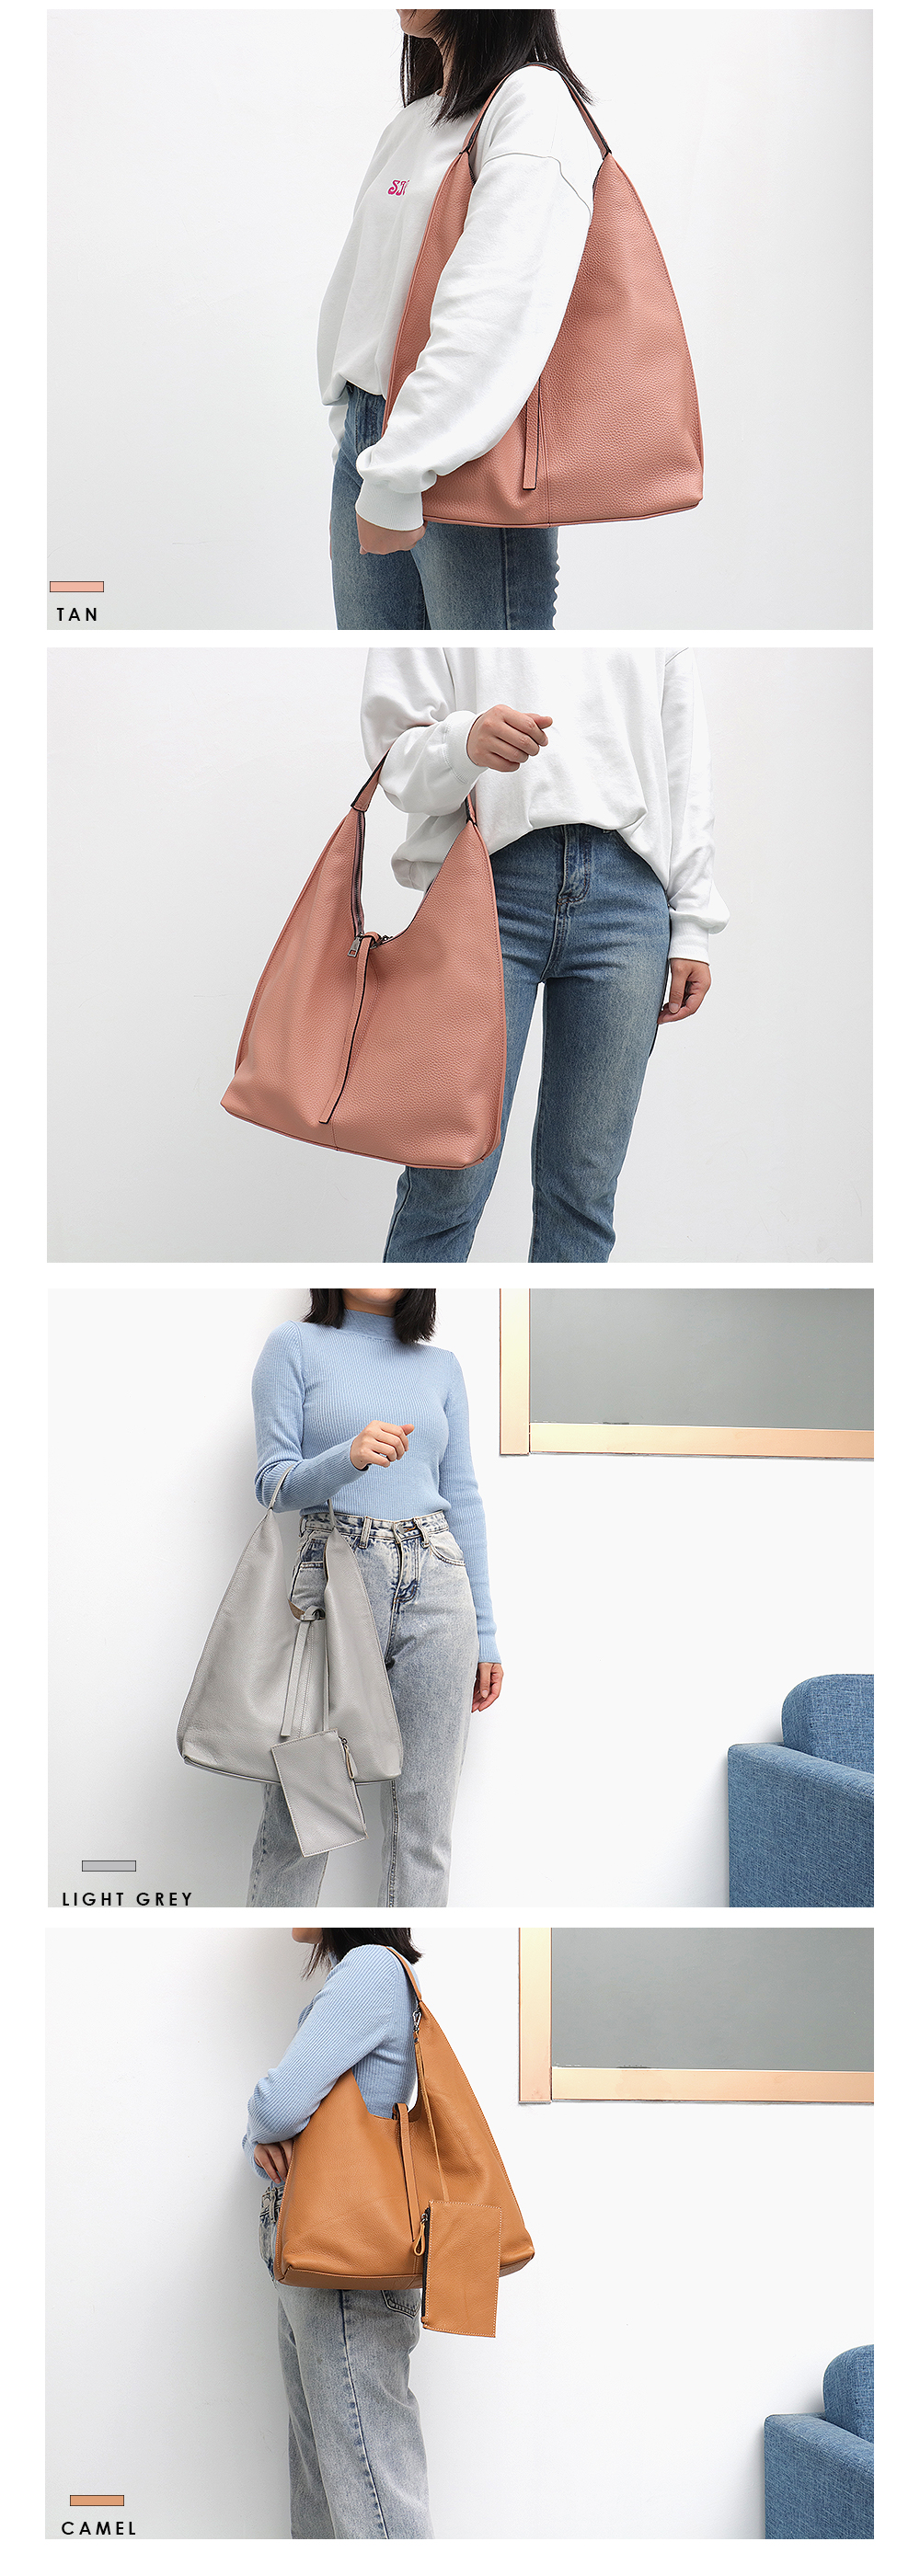 China leather hobo bag Suppliers